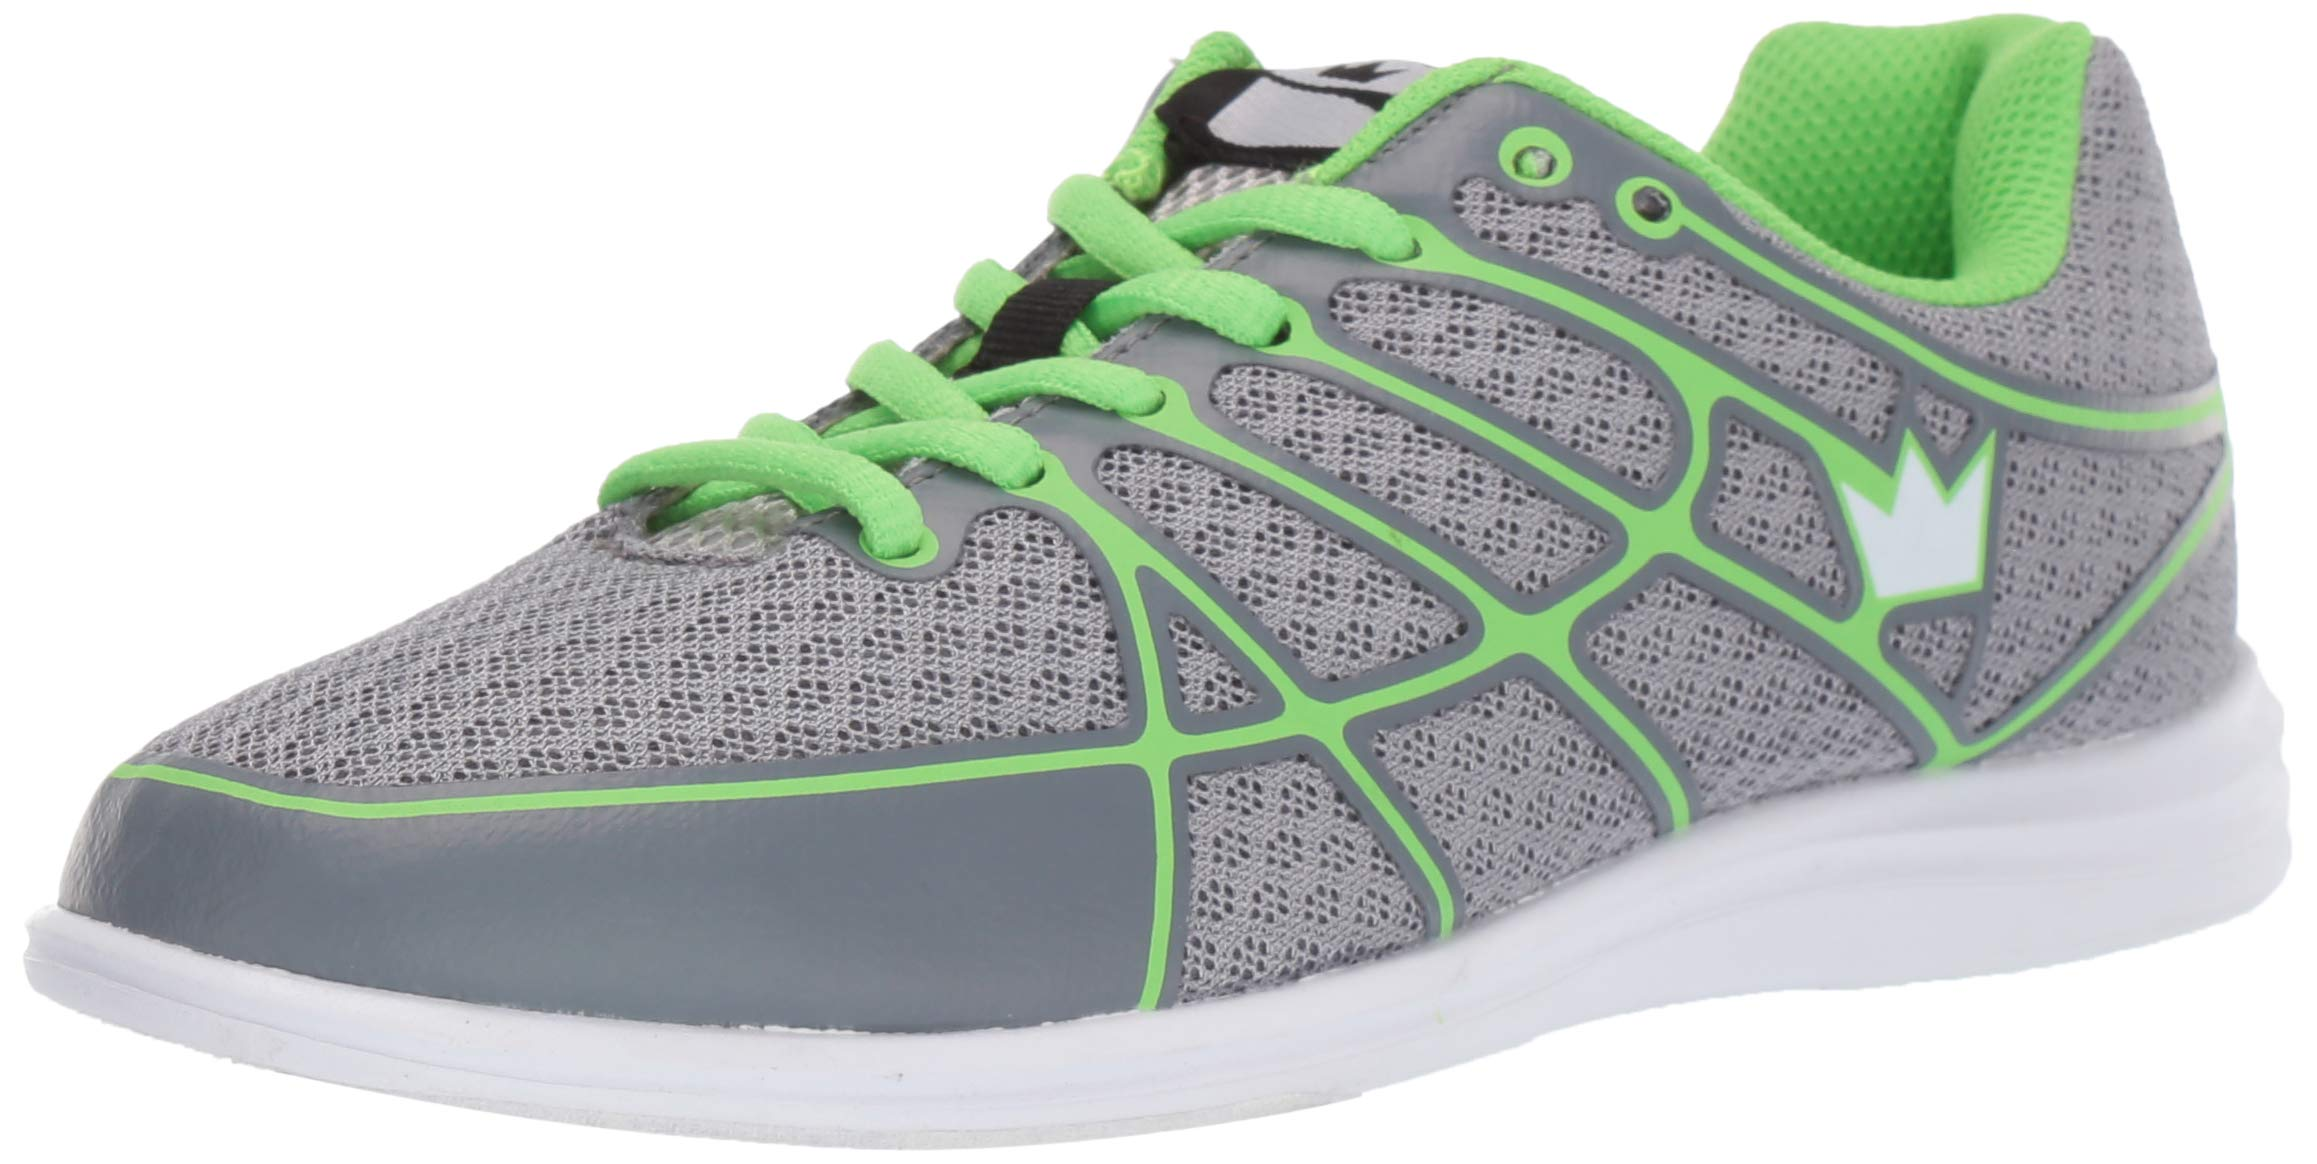 Brunswick Aura Women's Bowling Shoes, Grey/Lime, 11